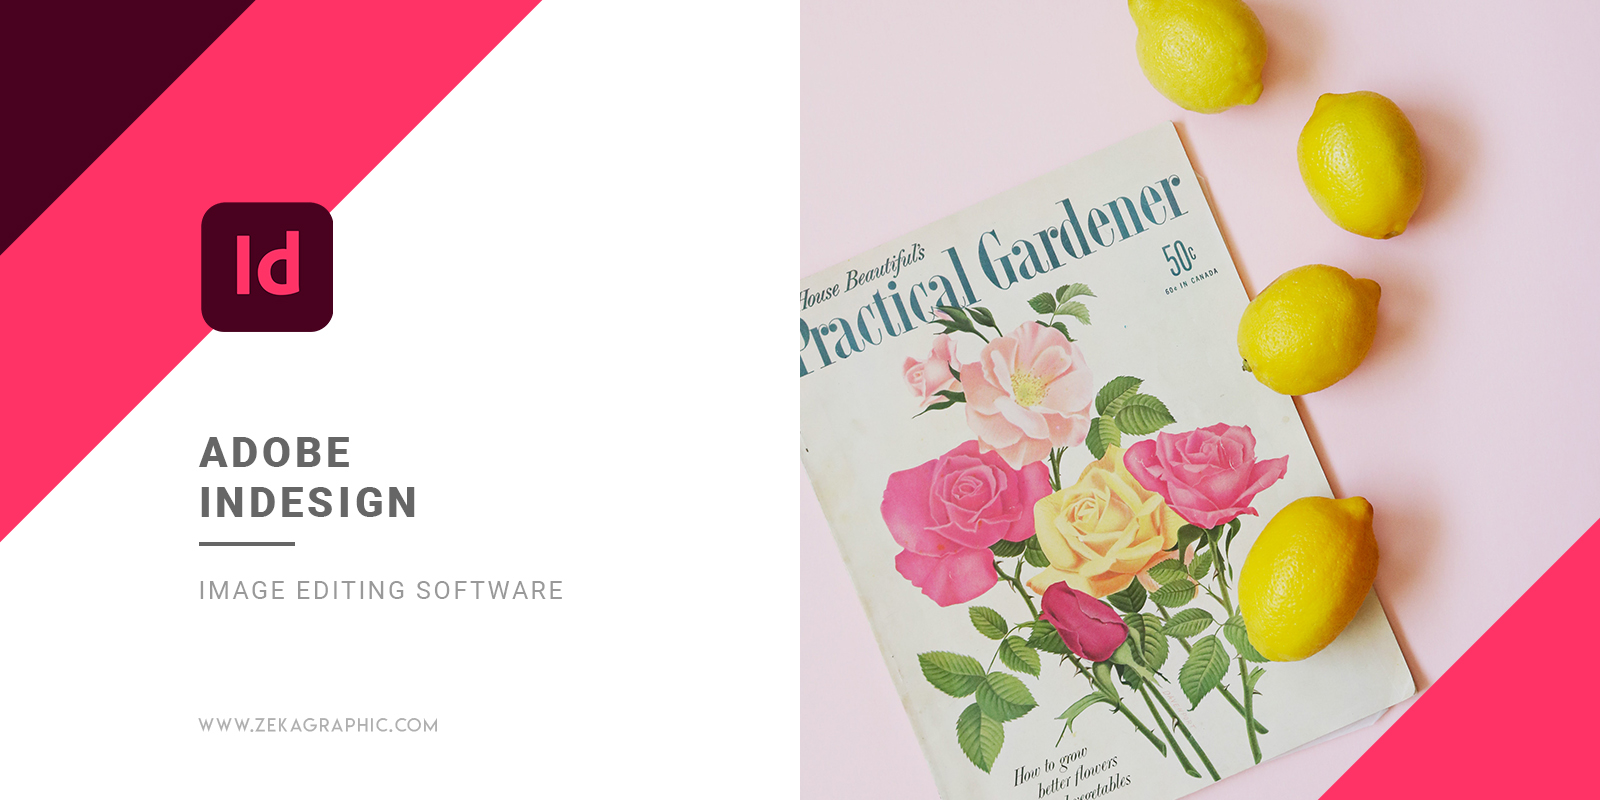 Adobe Indesign Image Editing Software for Graphic Design